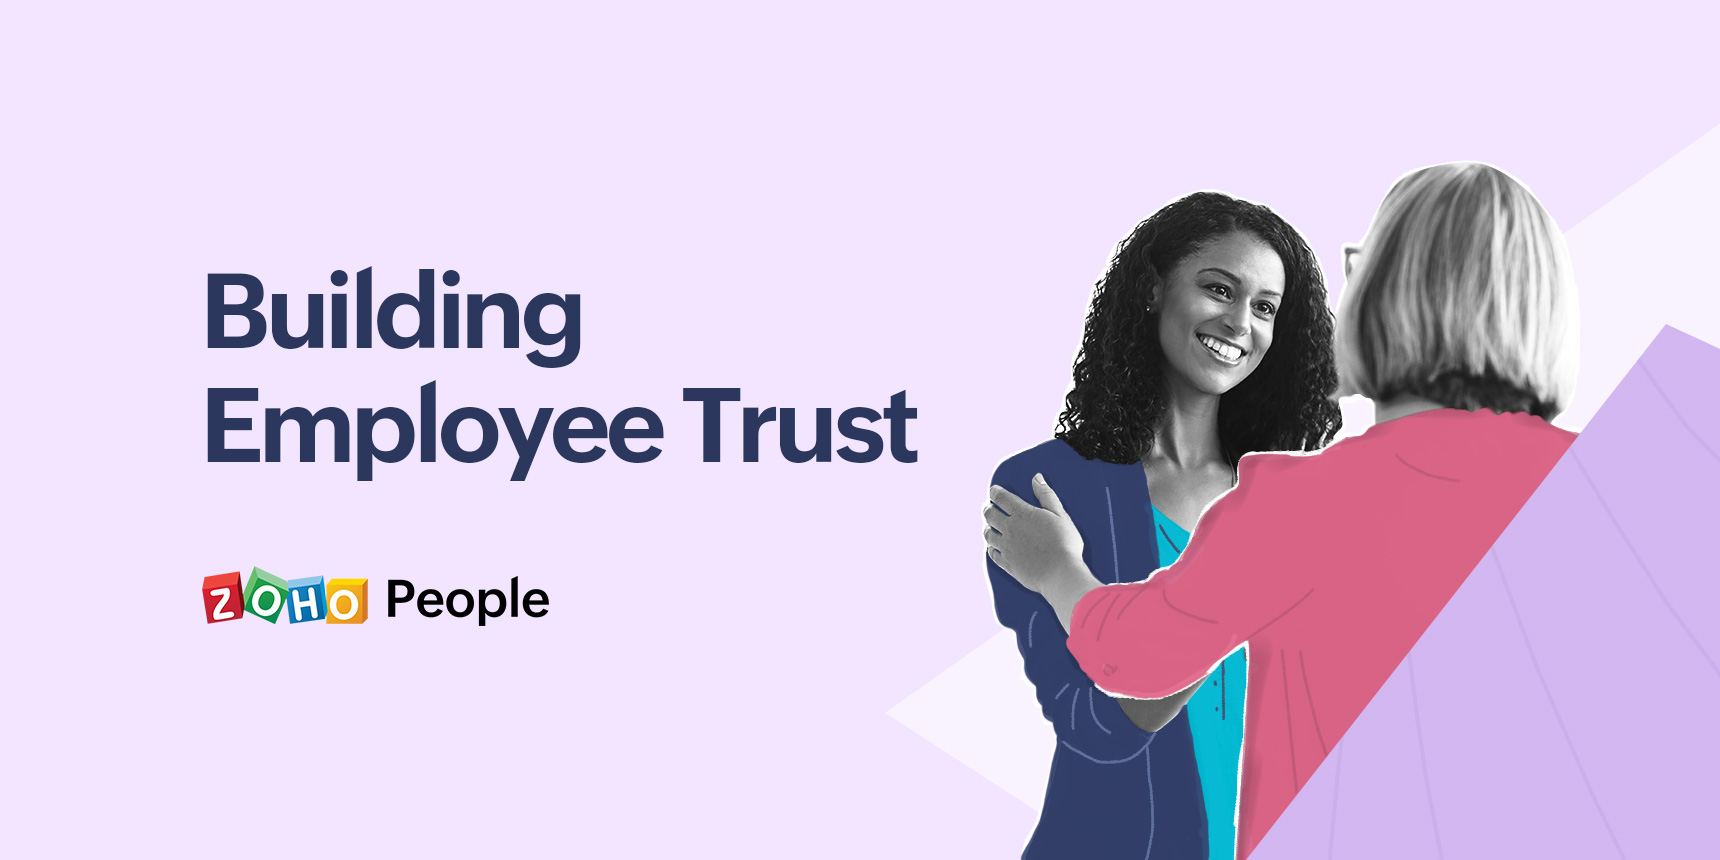 How organizations can build employee trust